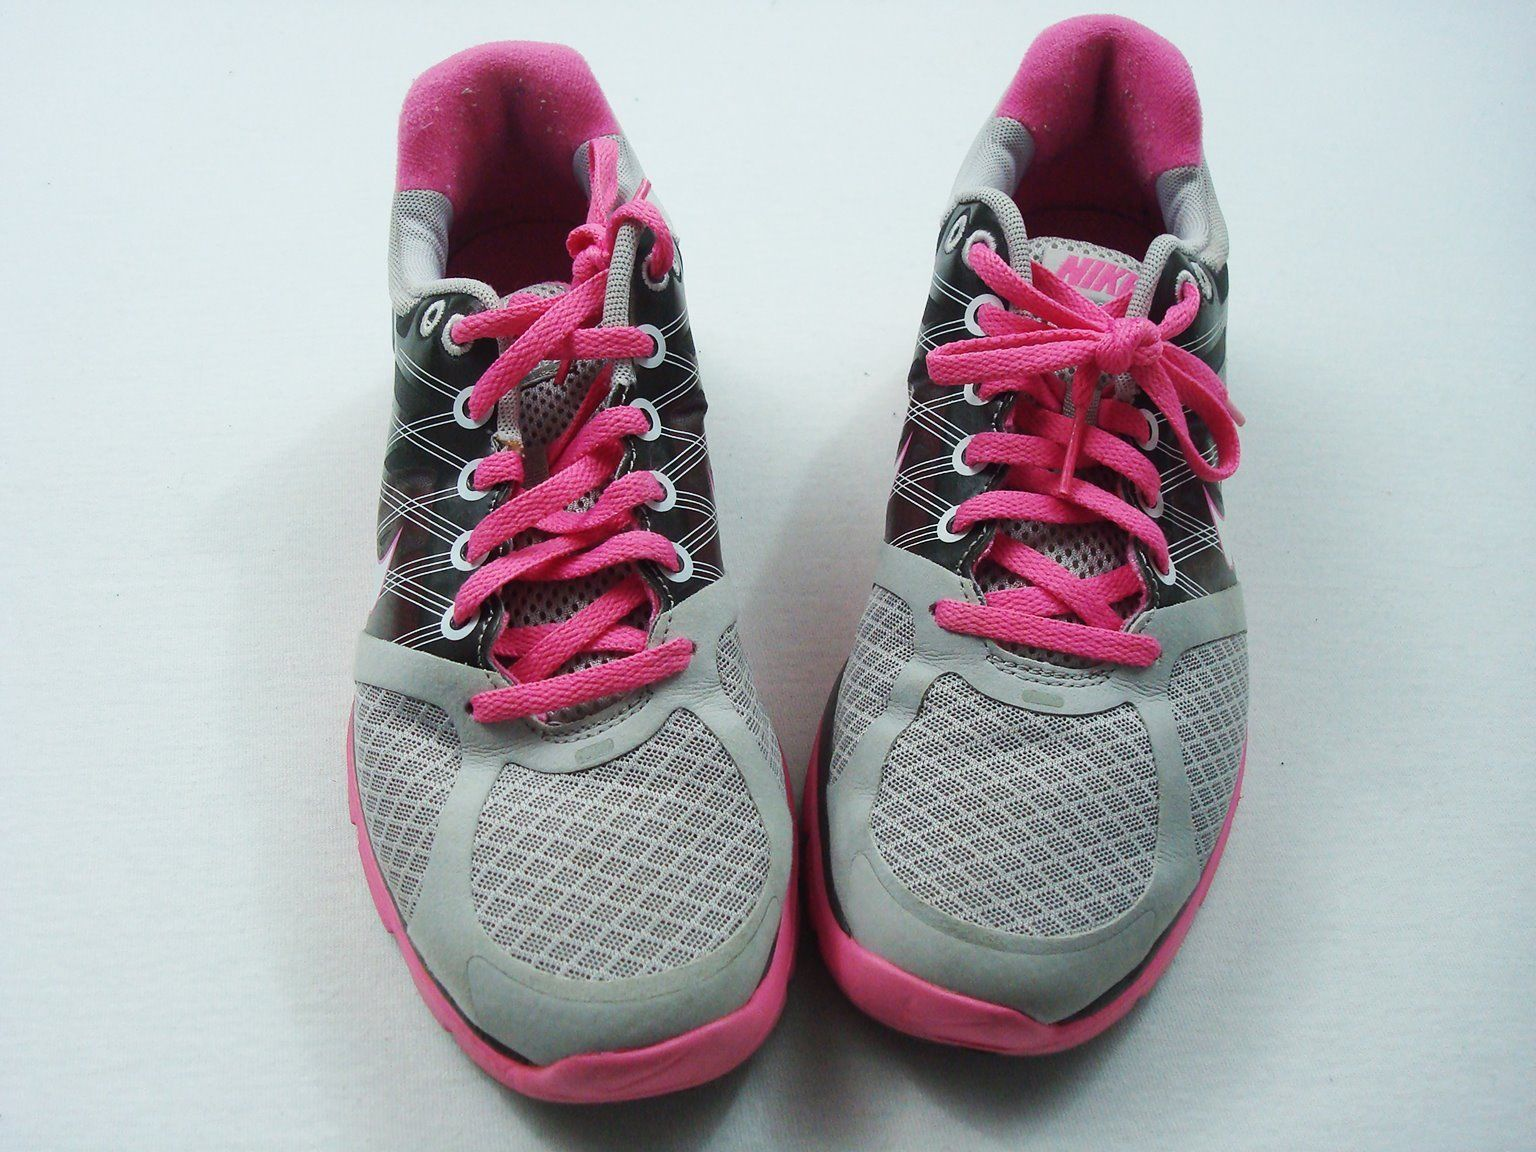 huge discount 1f053 58ae1 Nike Running Shoes Womens 8 OR 6.5 Youth Lunarglide Gray Pink Trim Trainers